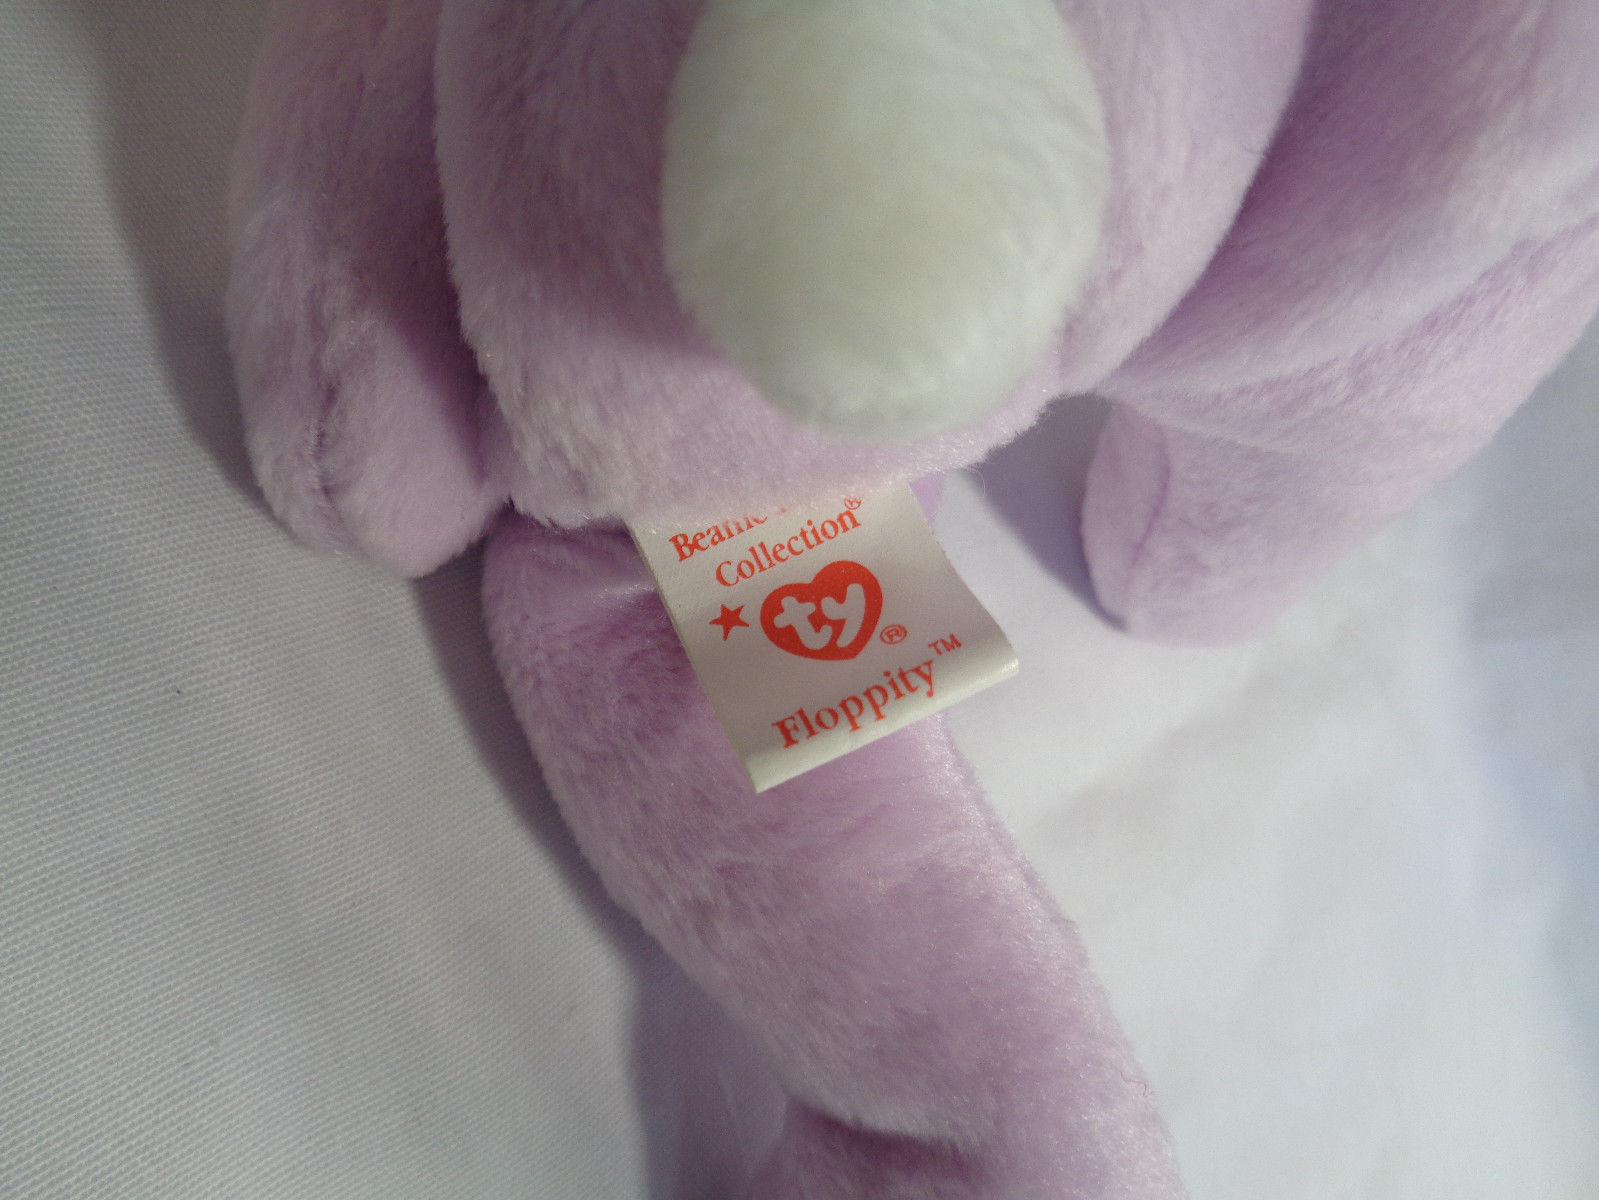 """TY Beanie Babies 1996 Lavender Bunny Floppity 8"""" w/ Hang Tag 5/23/96 image 5"""